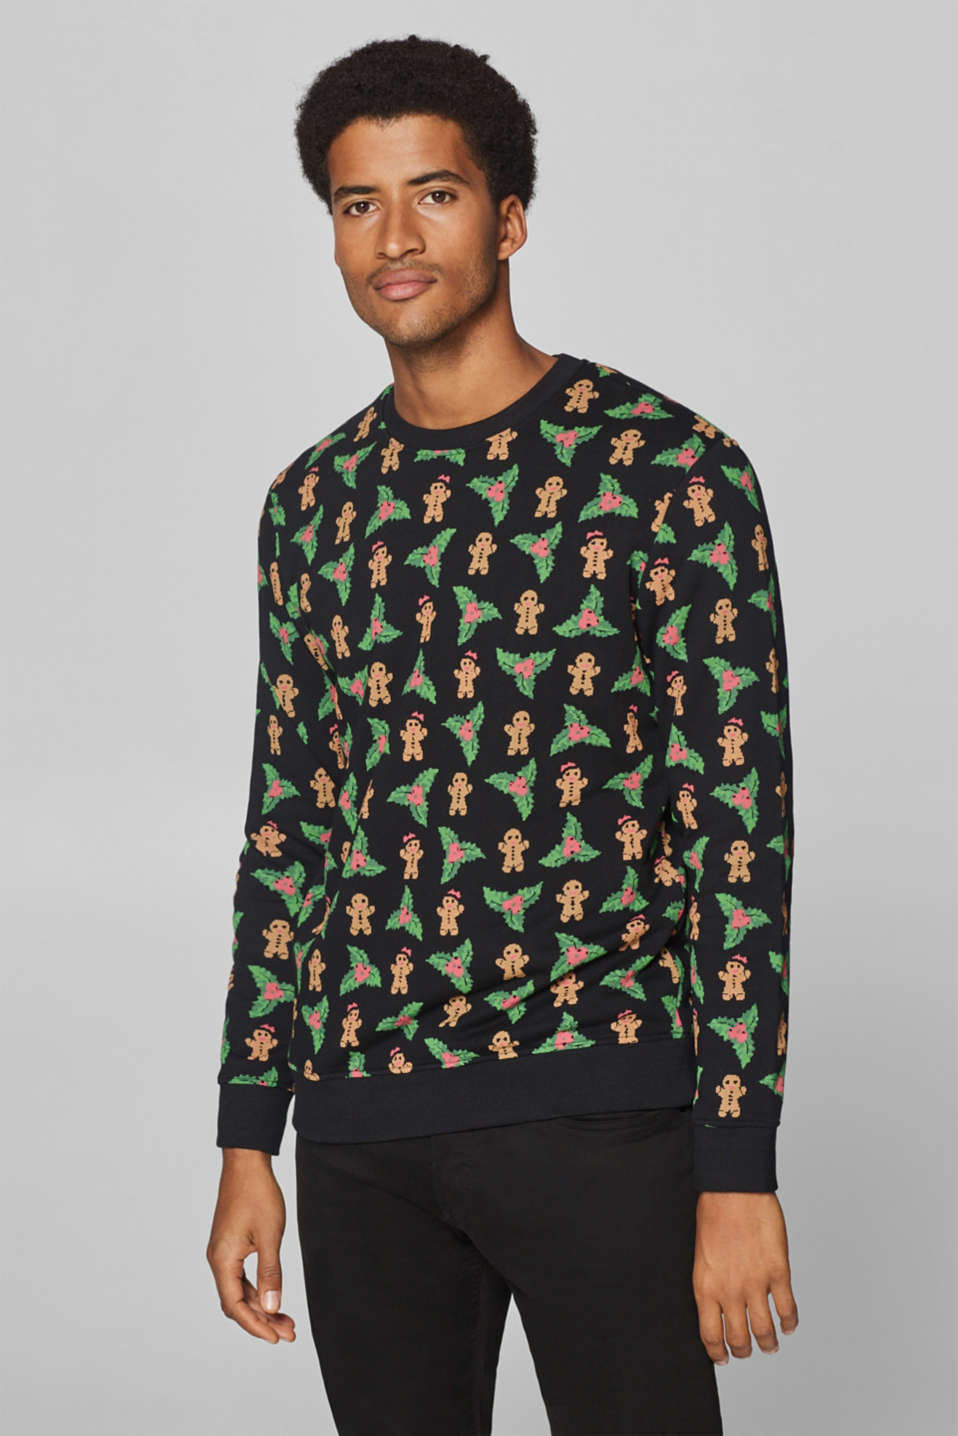 edc - Sweatshirt with gingerbread print, 100% cotton